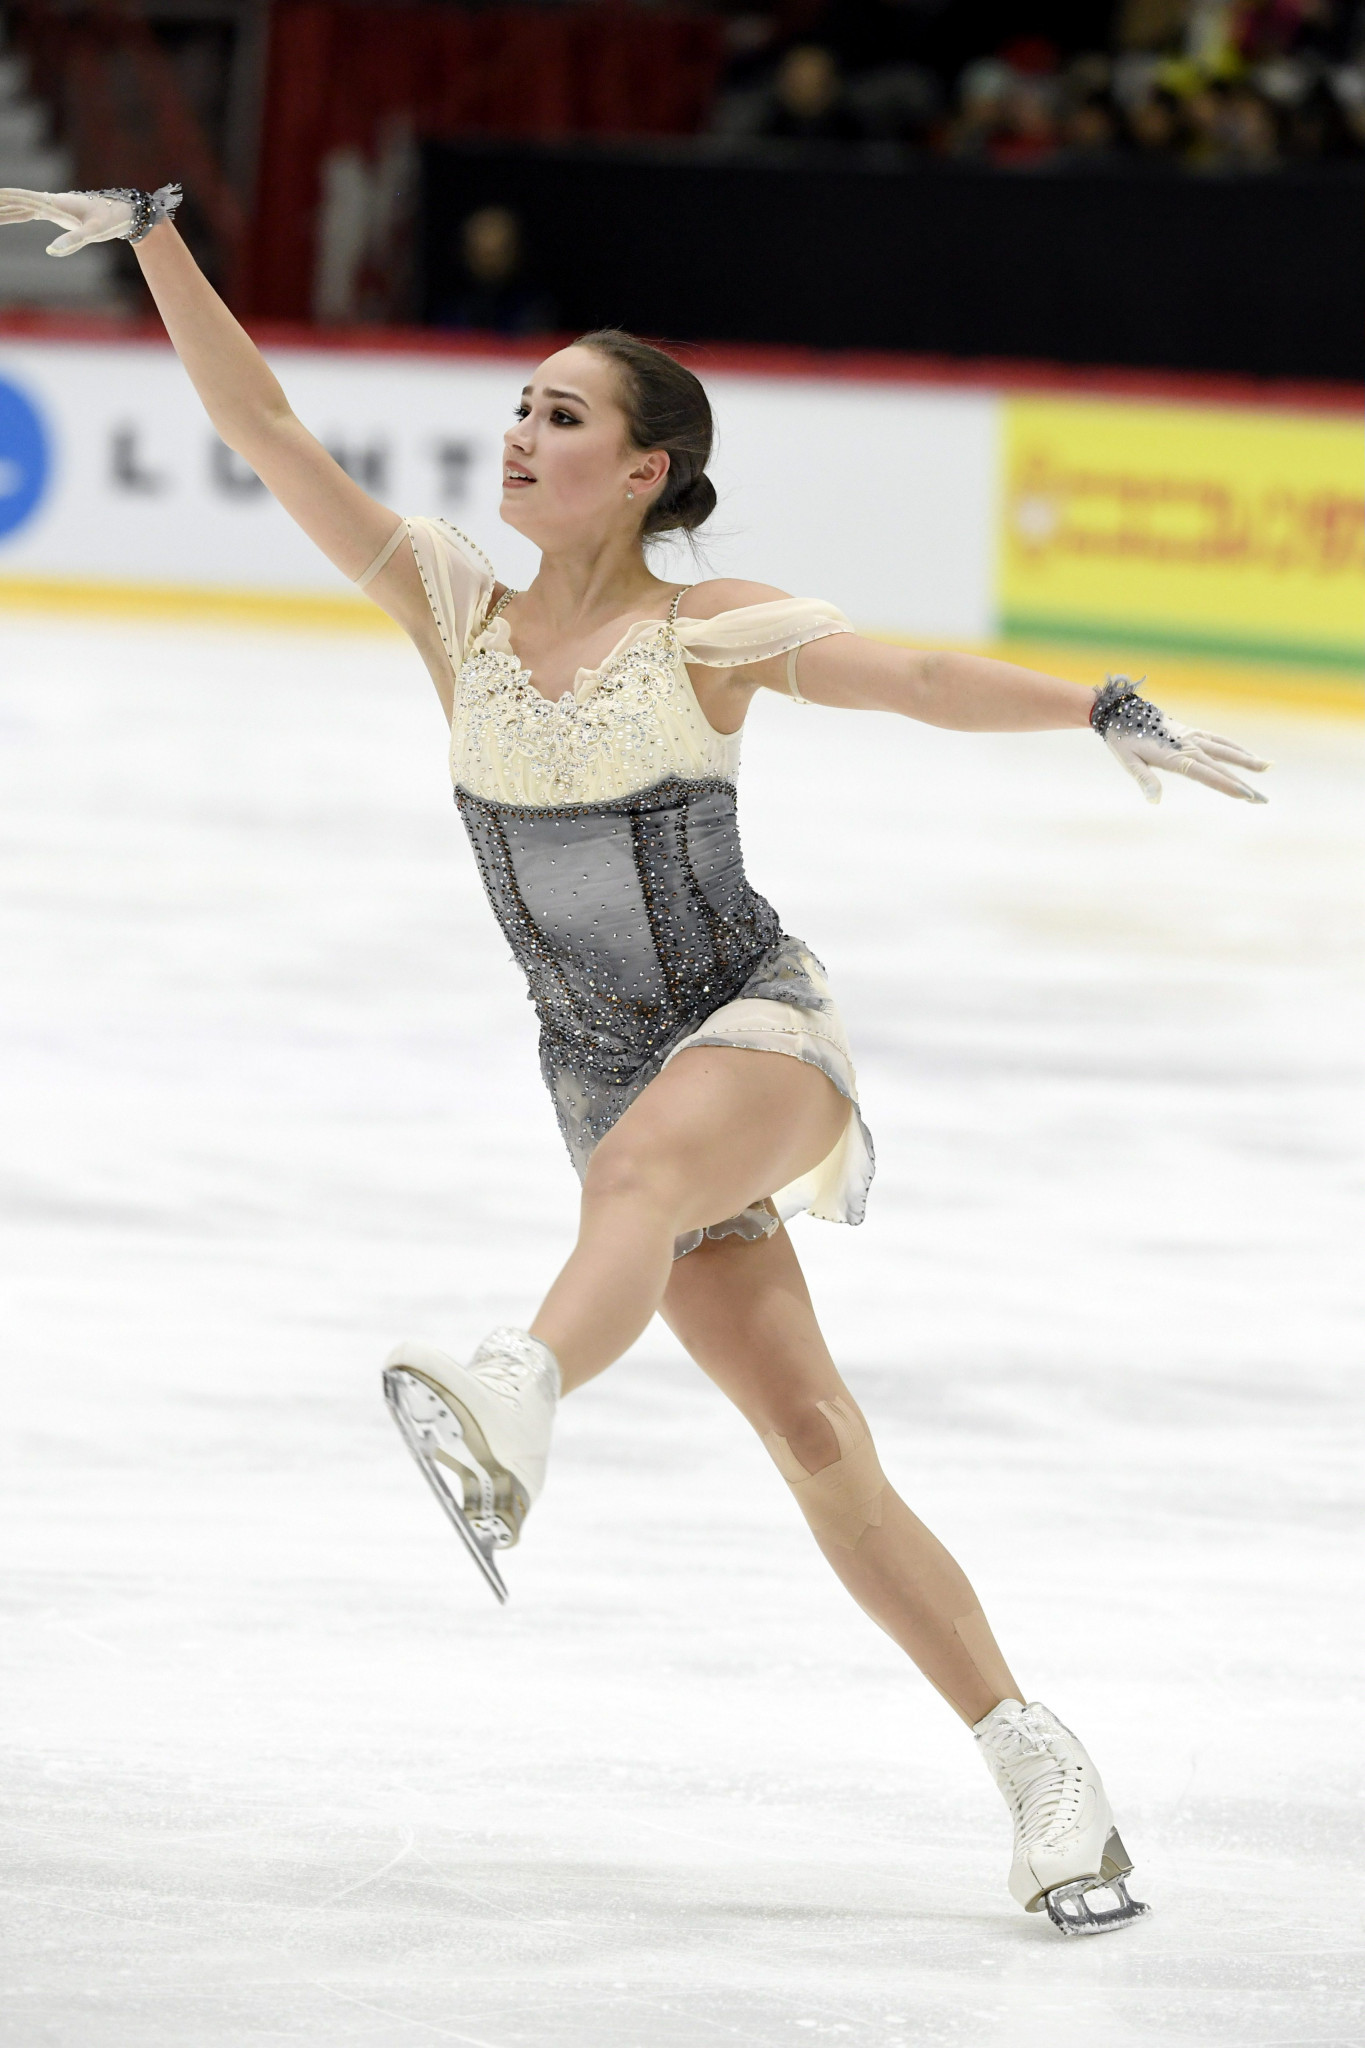 Olympic champion Zagitova takes firm grip on ISU Helsinki Figure Skating Grand Prix